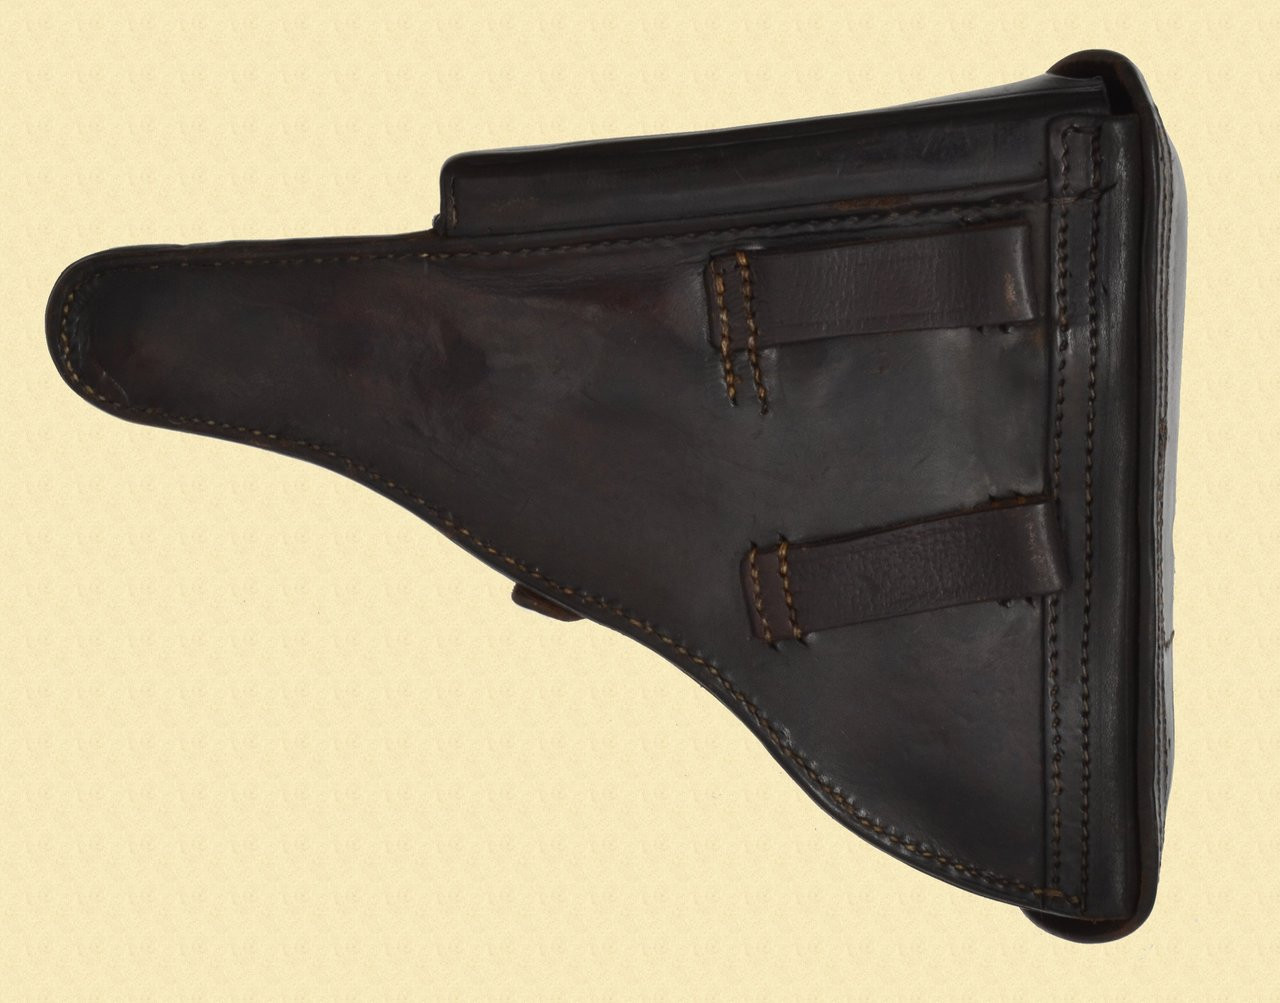 GERMAN LUGER HOLSTER TURKISH - C40184